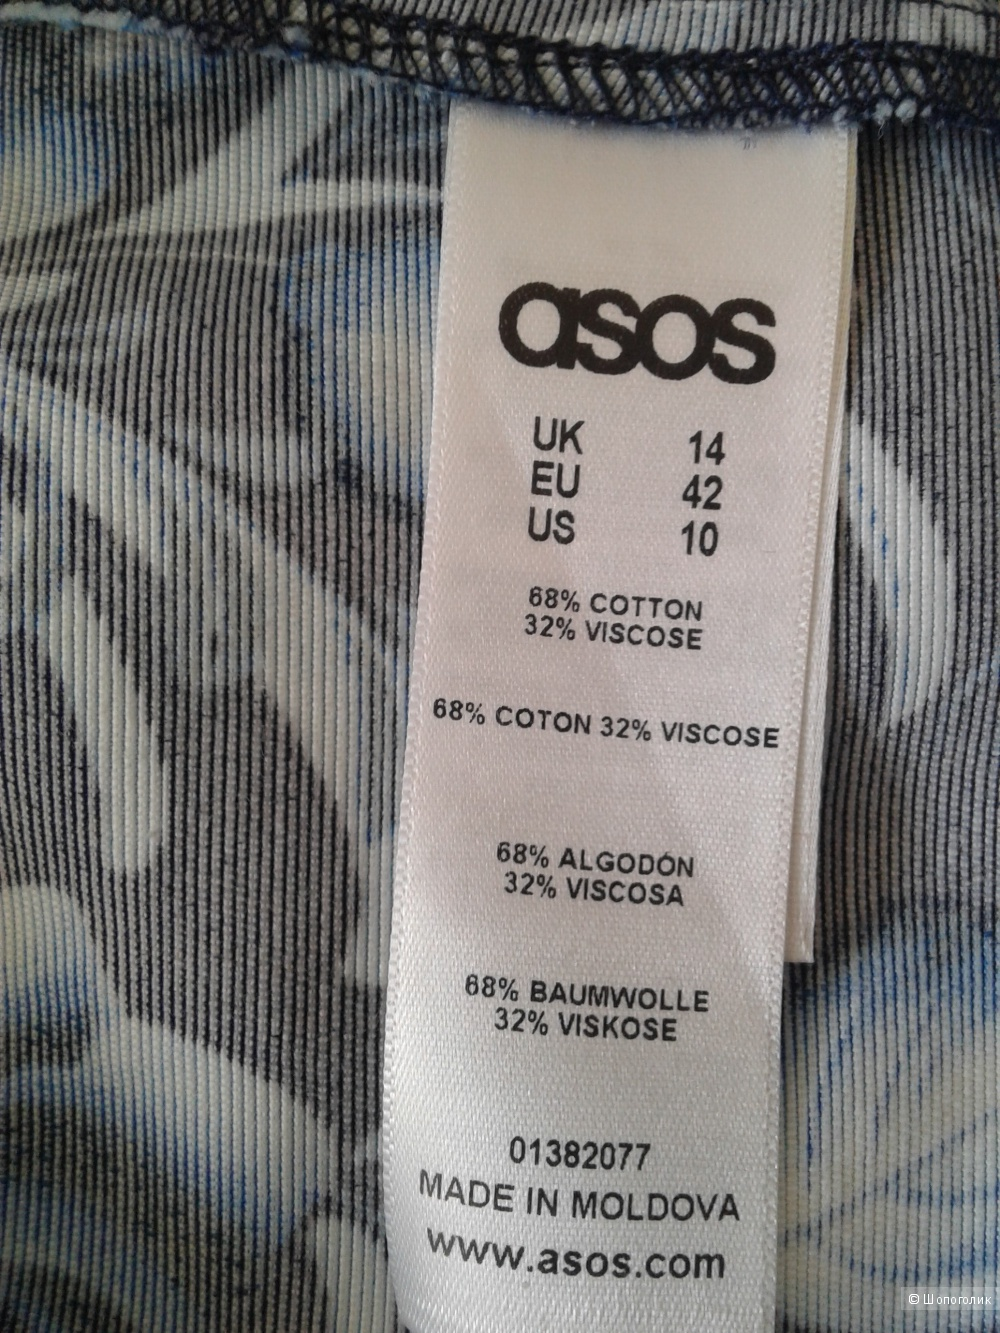 Платье ASOS UK 14 eu 42 US 10 рос 48-50